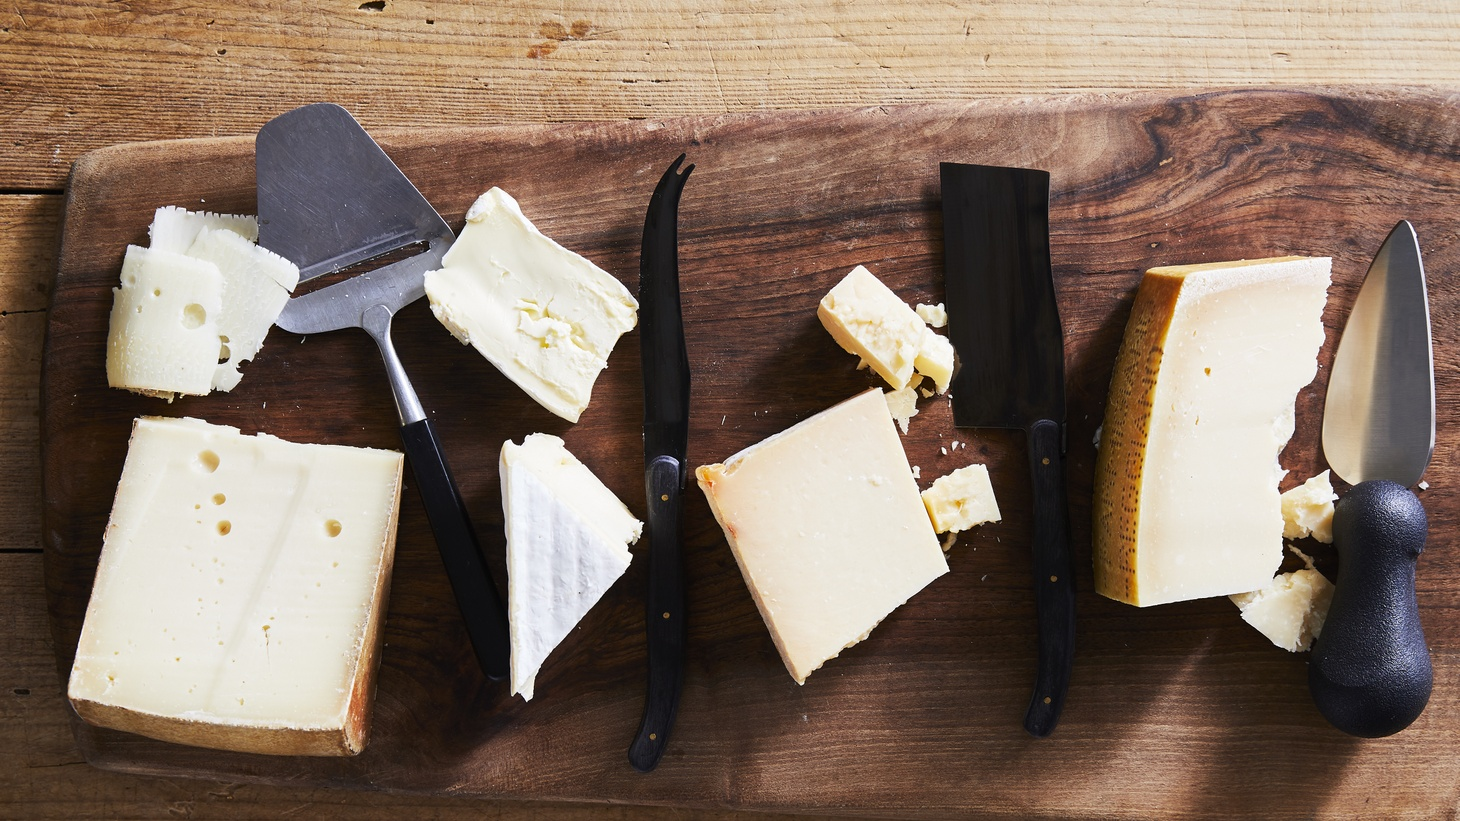 A cheese board and knives.